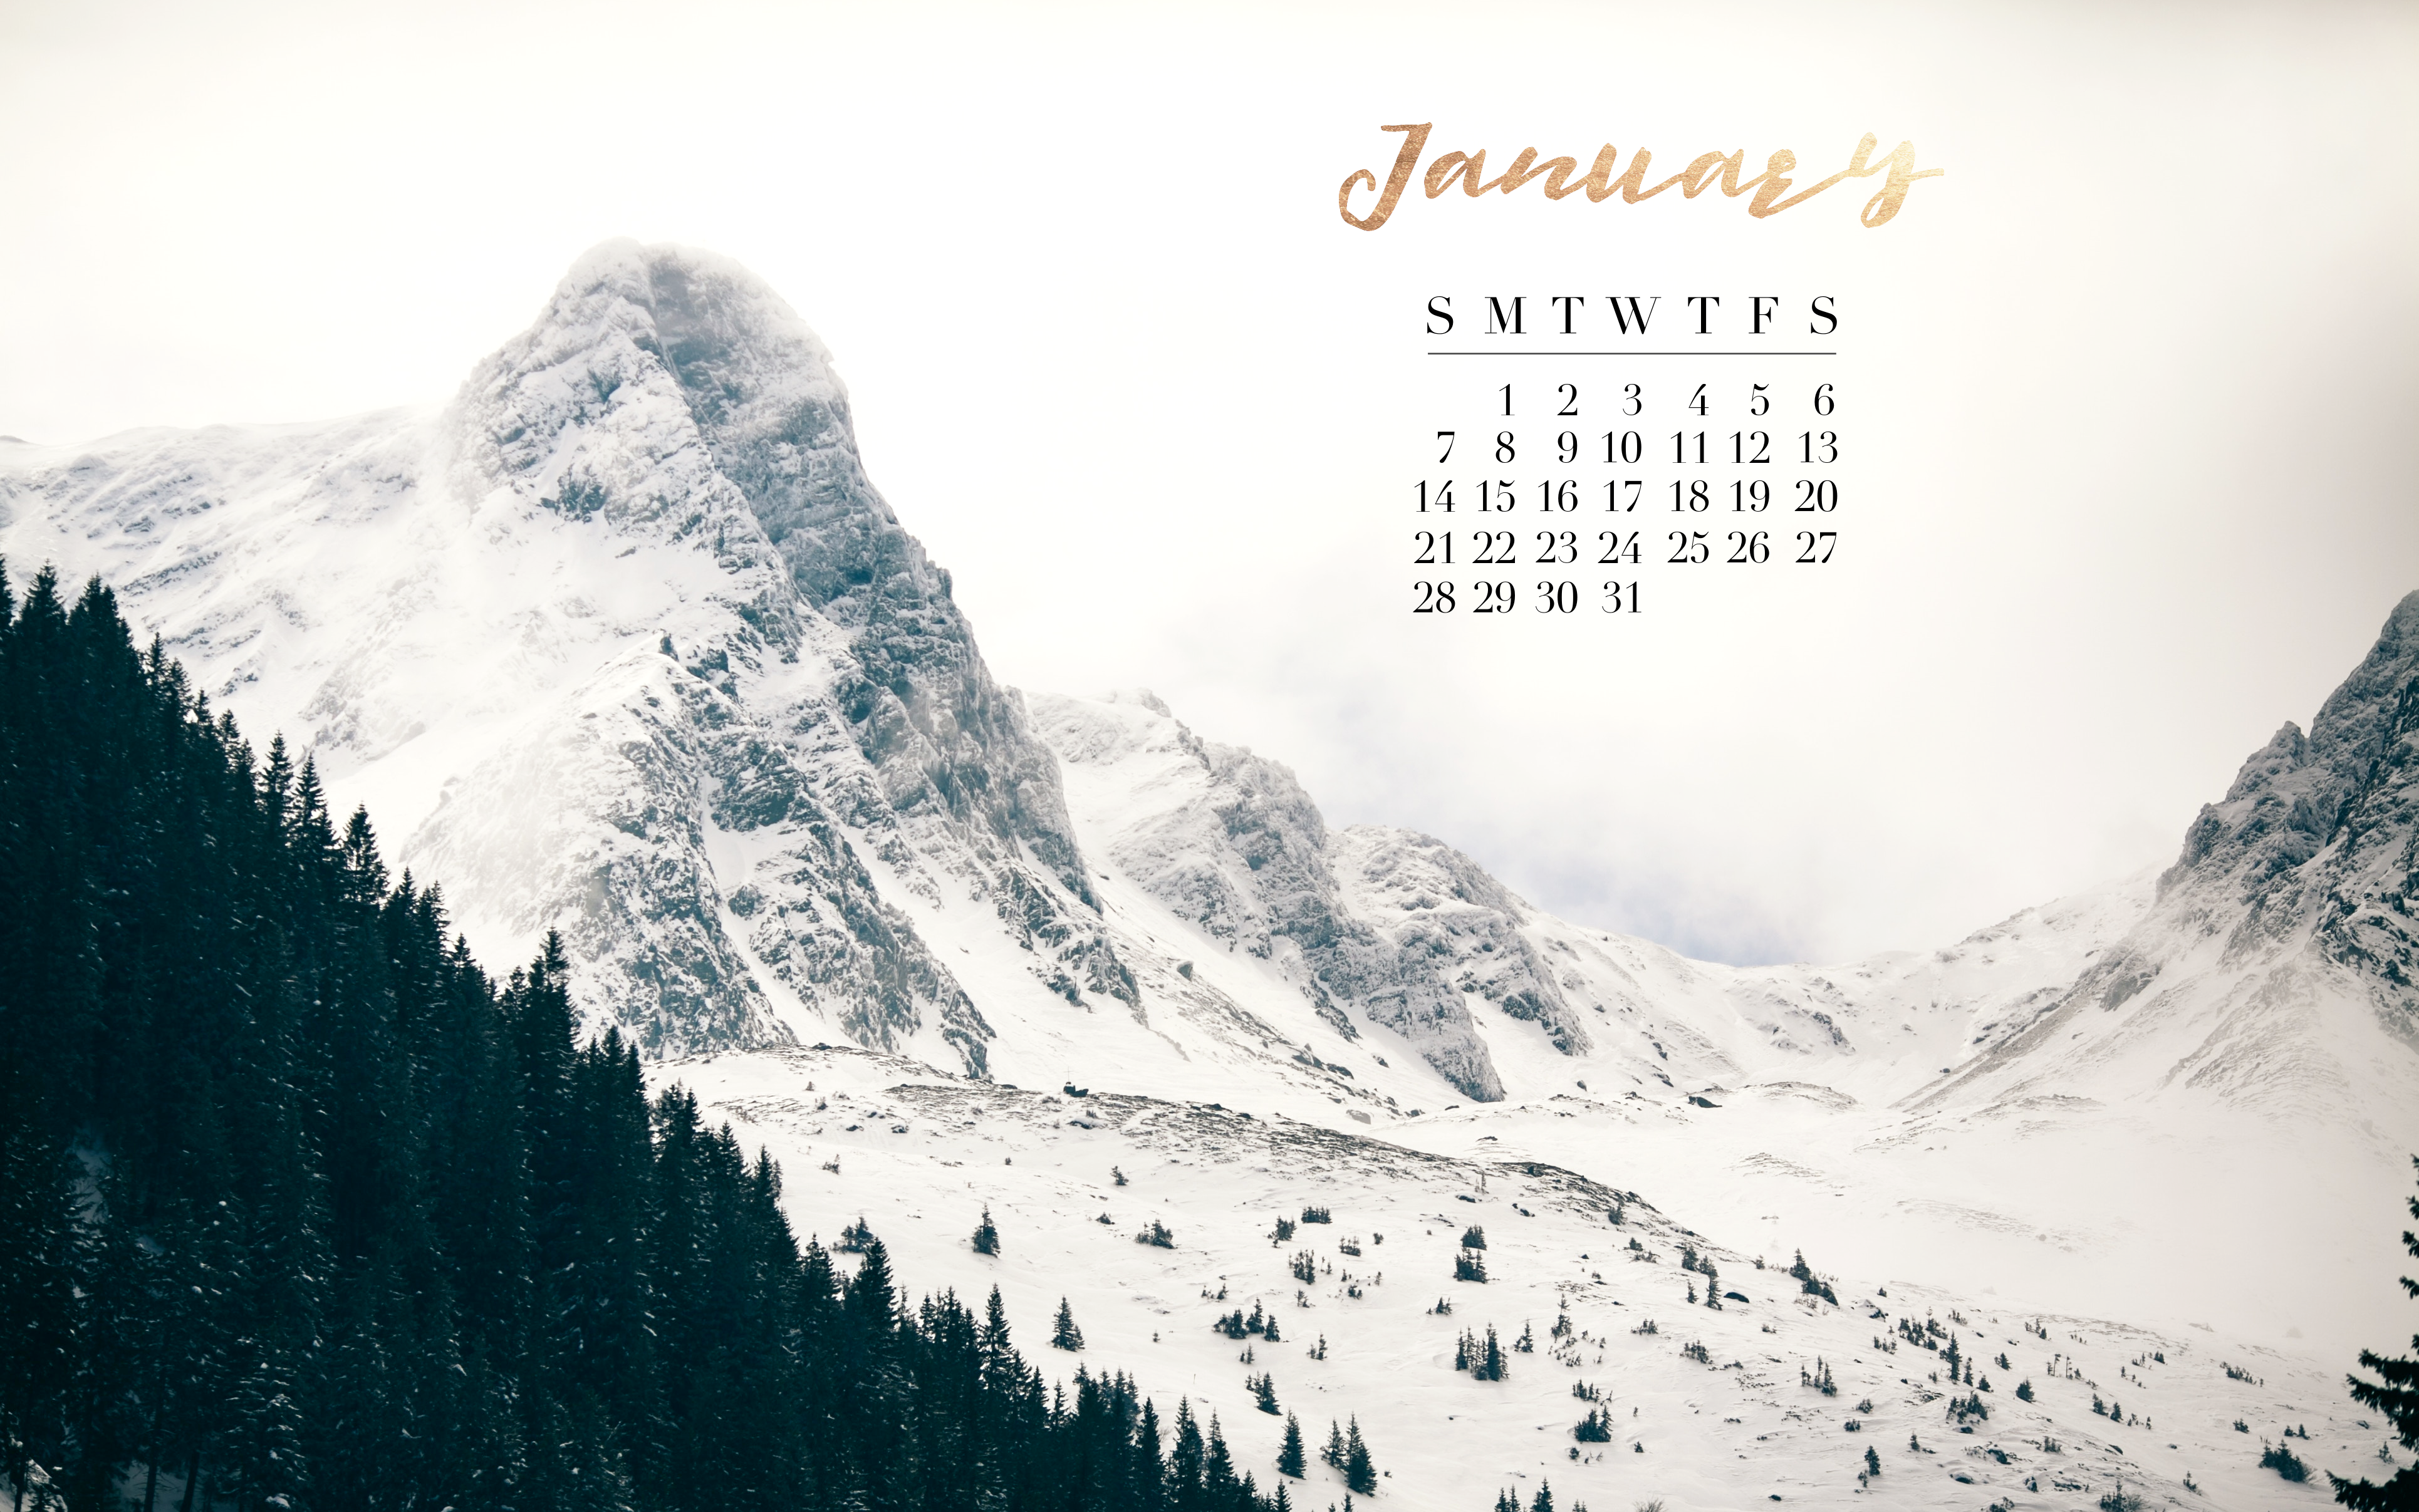 Calendar Wallpaper Mac : January calendar mac laptop background gold